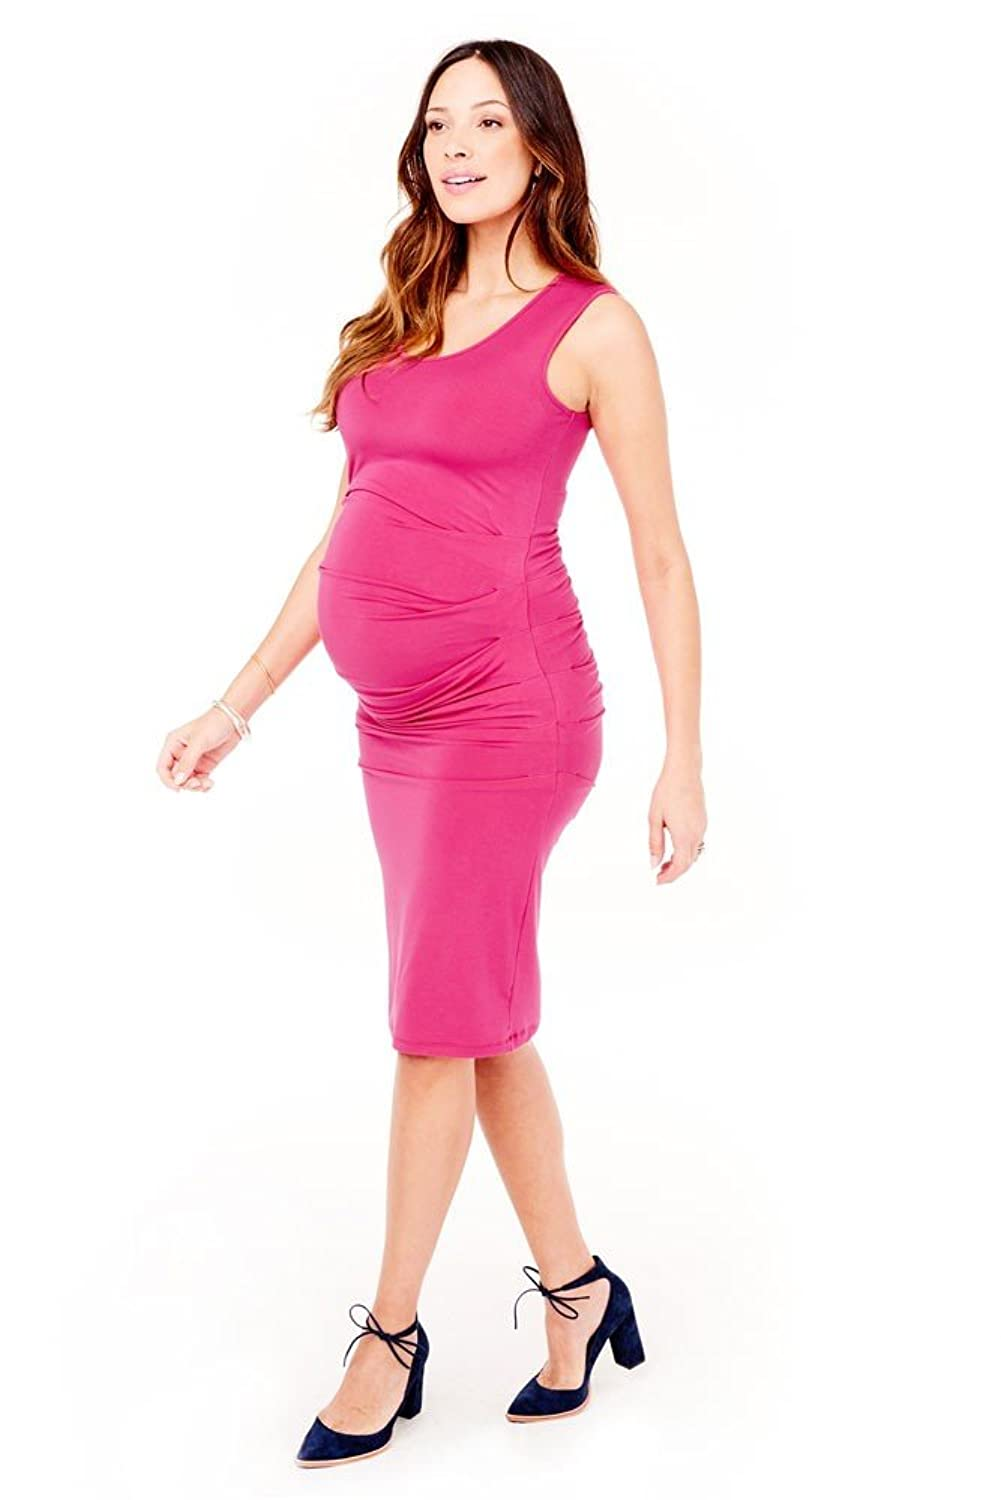 Ingrid isabel pleated tank maternity dress at amazon womens ingrid isabel pleated tank maternity dress at amazon womens clothing store ombrellifo Image collections